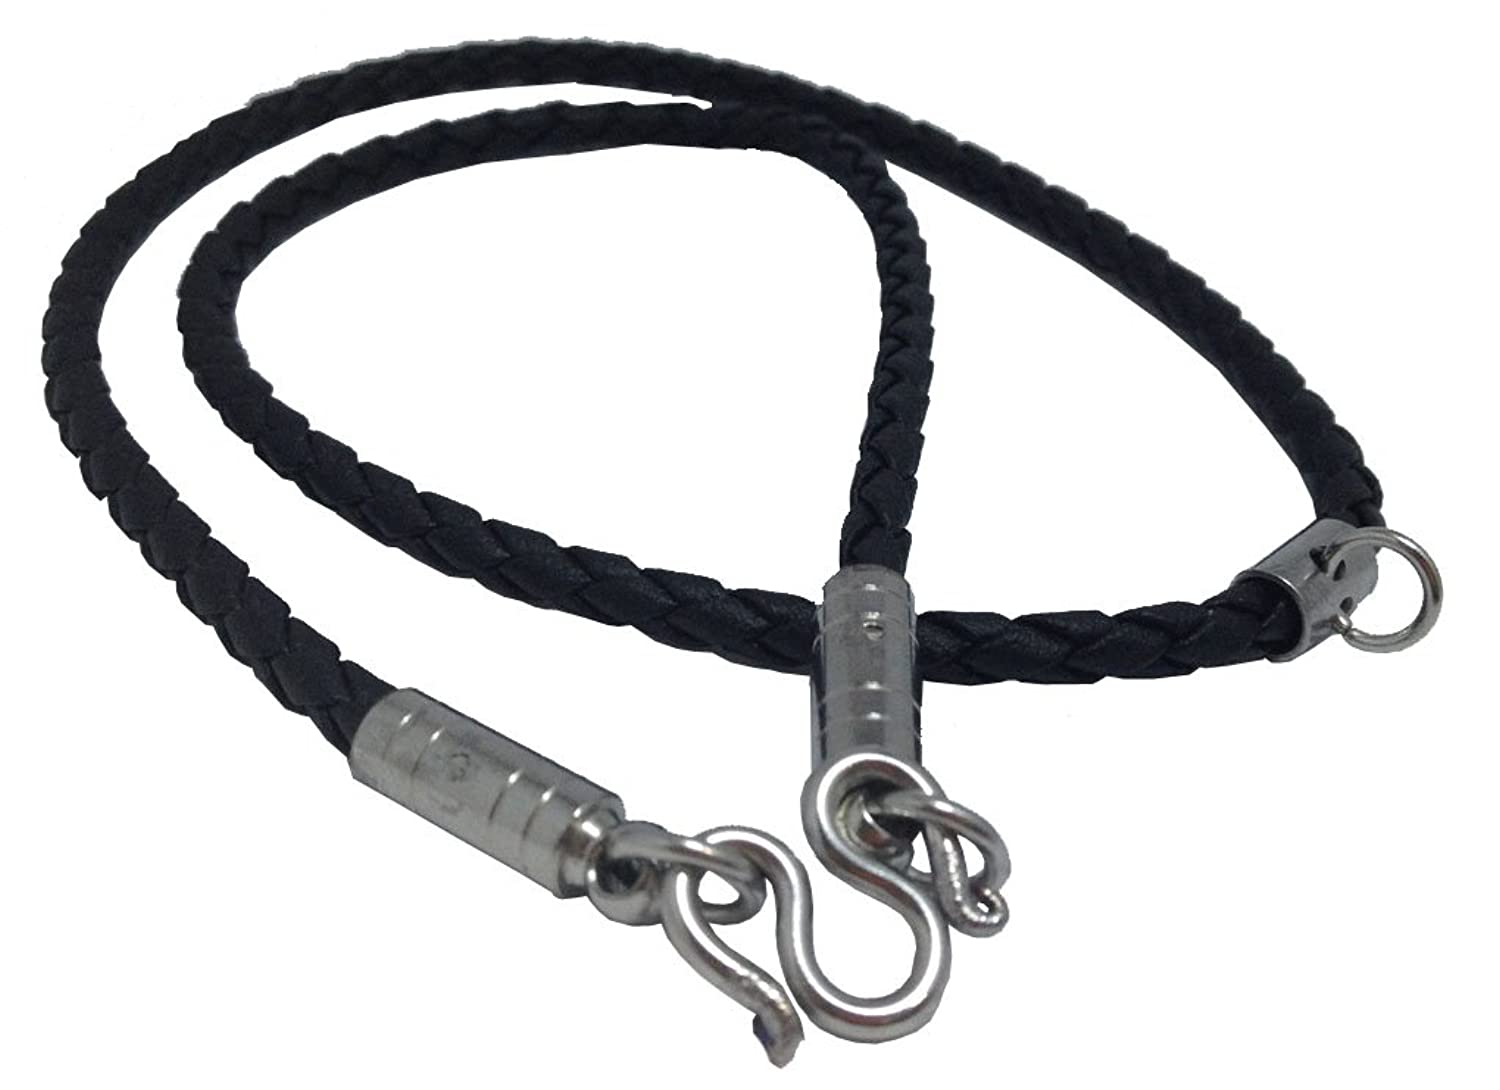 exclusive boys gray necklaces black rope beautiful oblacoder braided necklace for